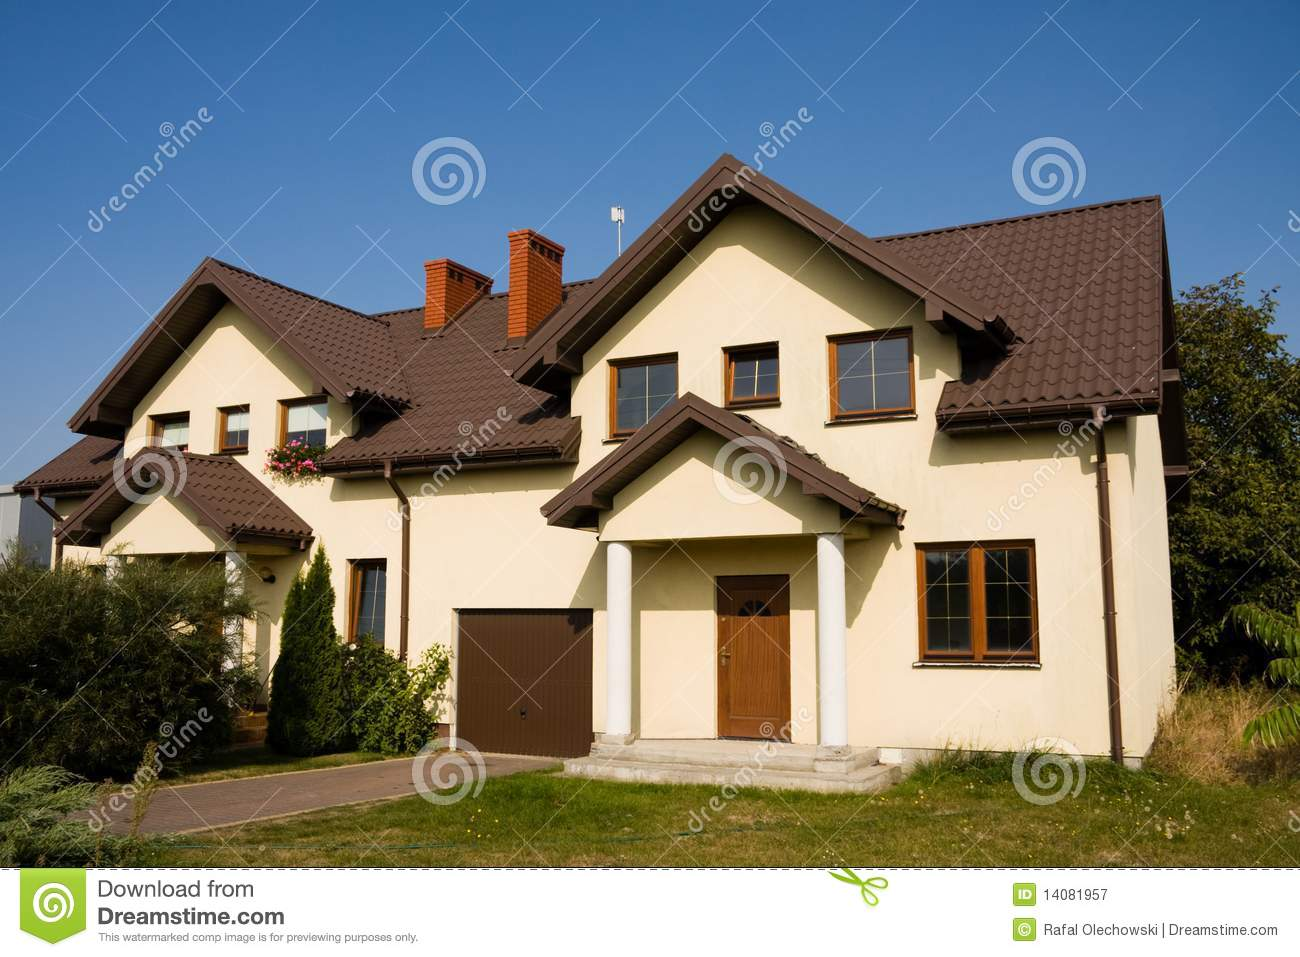 Single Family Small House Royalty Free Stock Photography